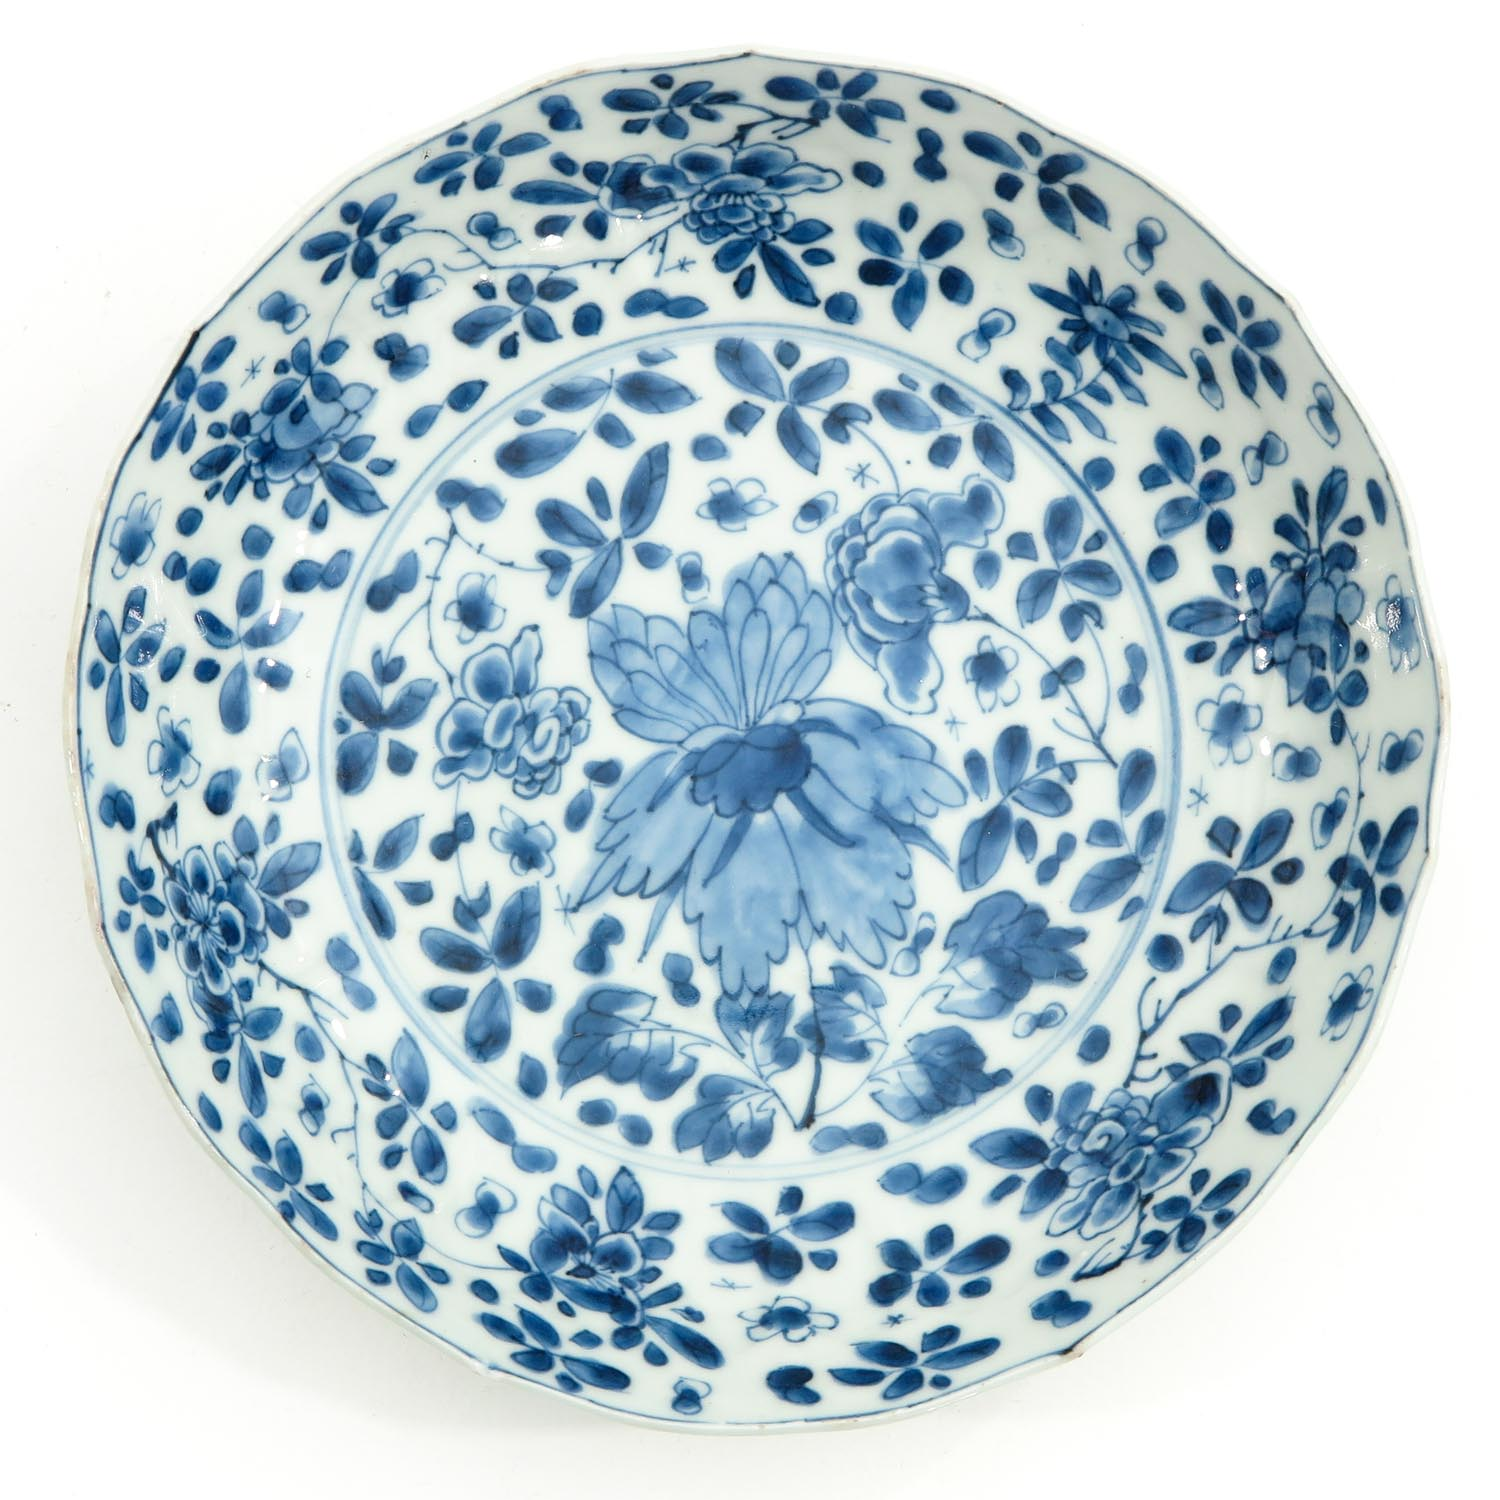 2 Blue and White Plates - Image 5 of 10